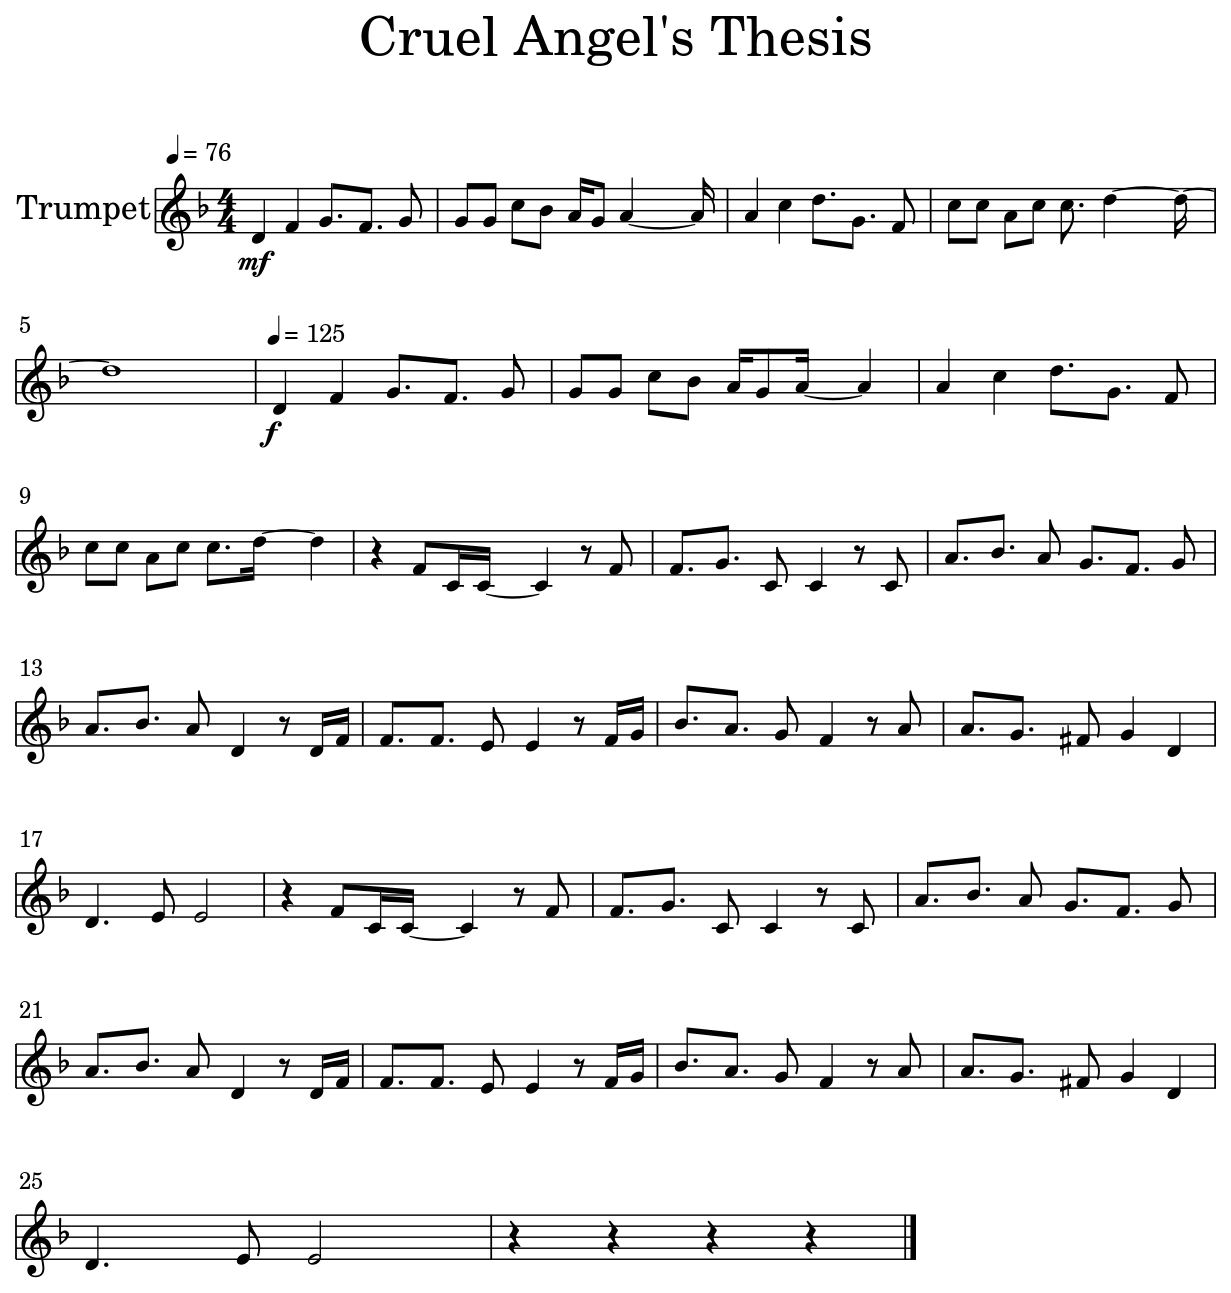 cruel angels thesis trumpet sheet music